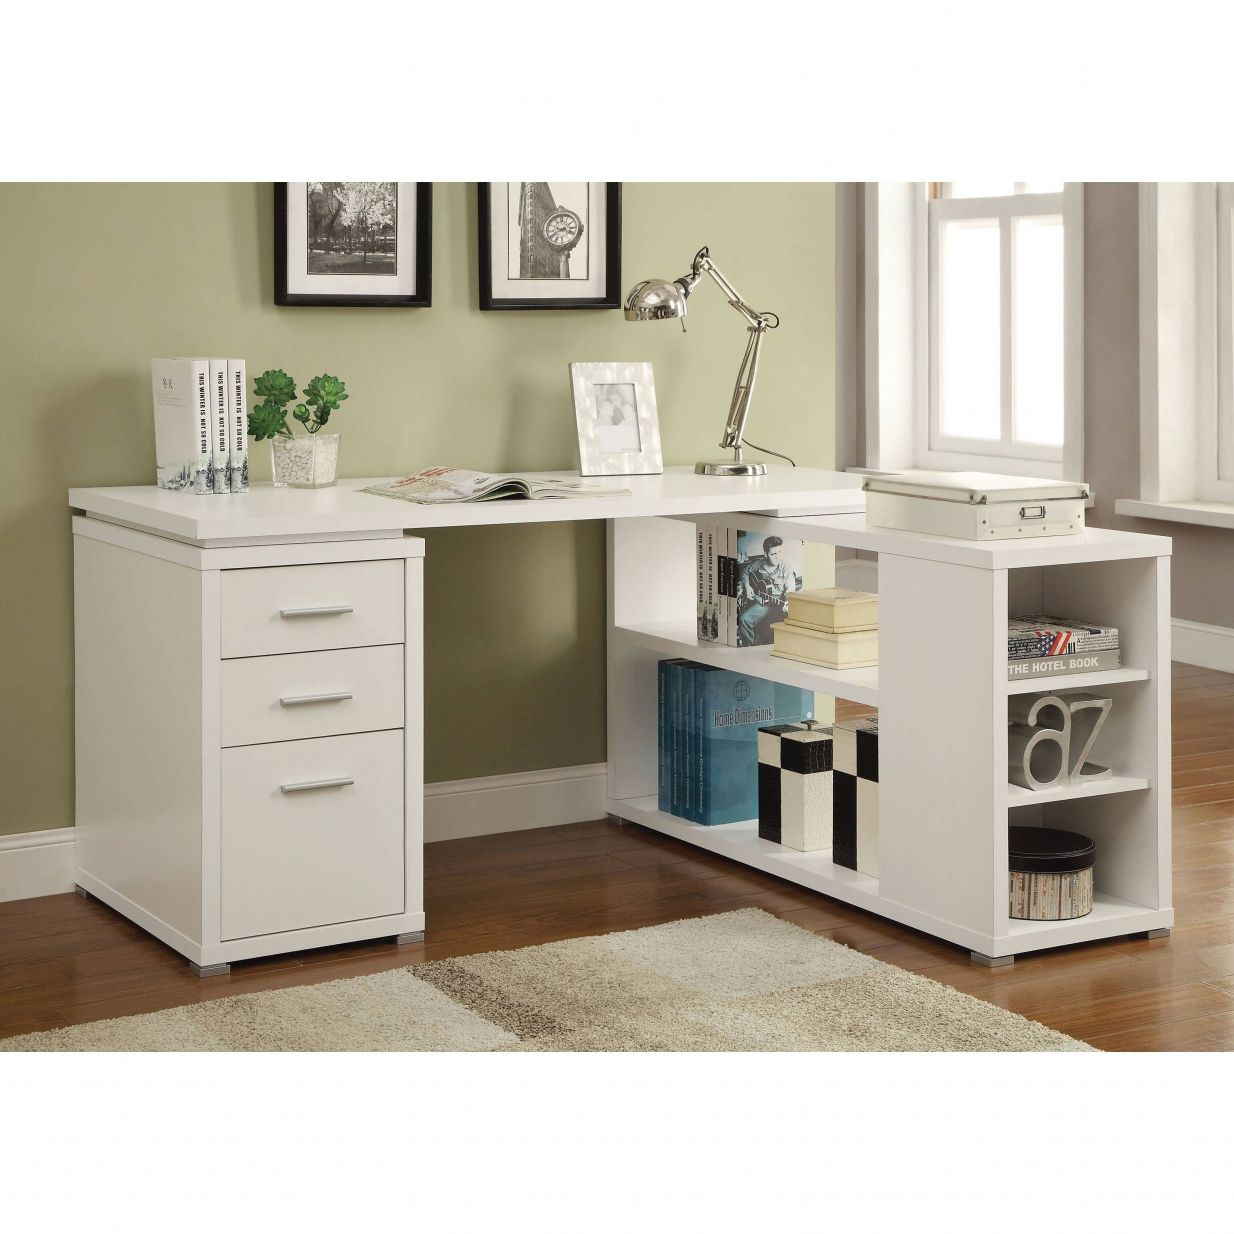 Diy sewing table ikea office corner desk units  organizing ideas for desk check more at